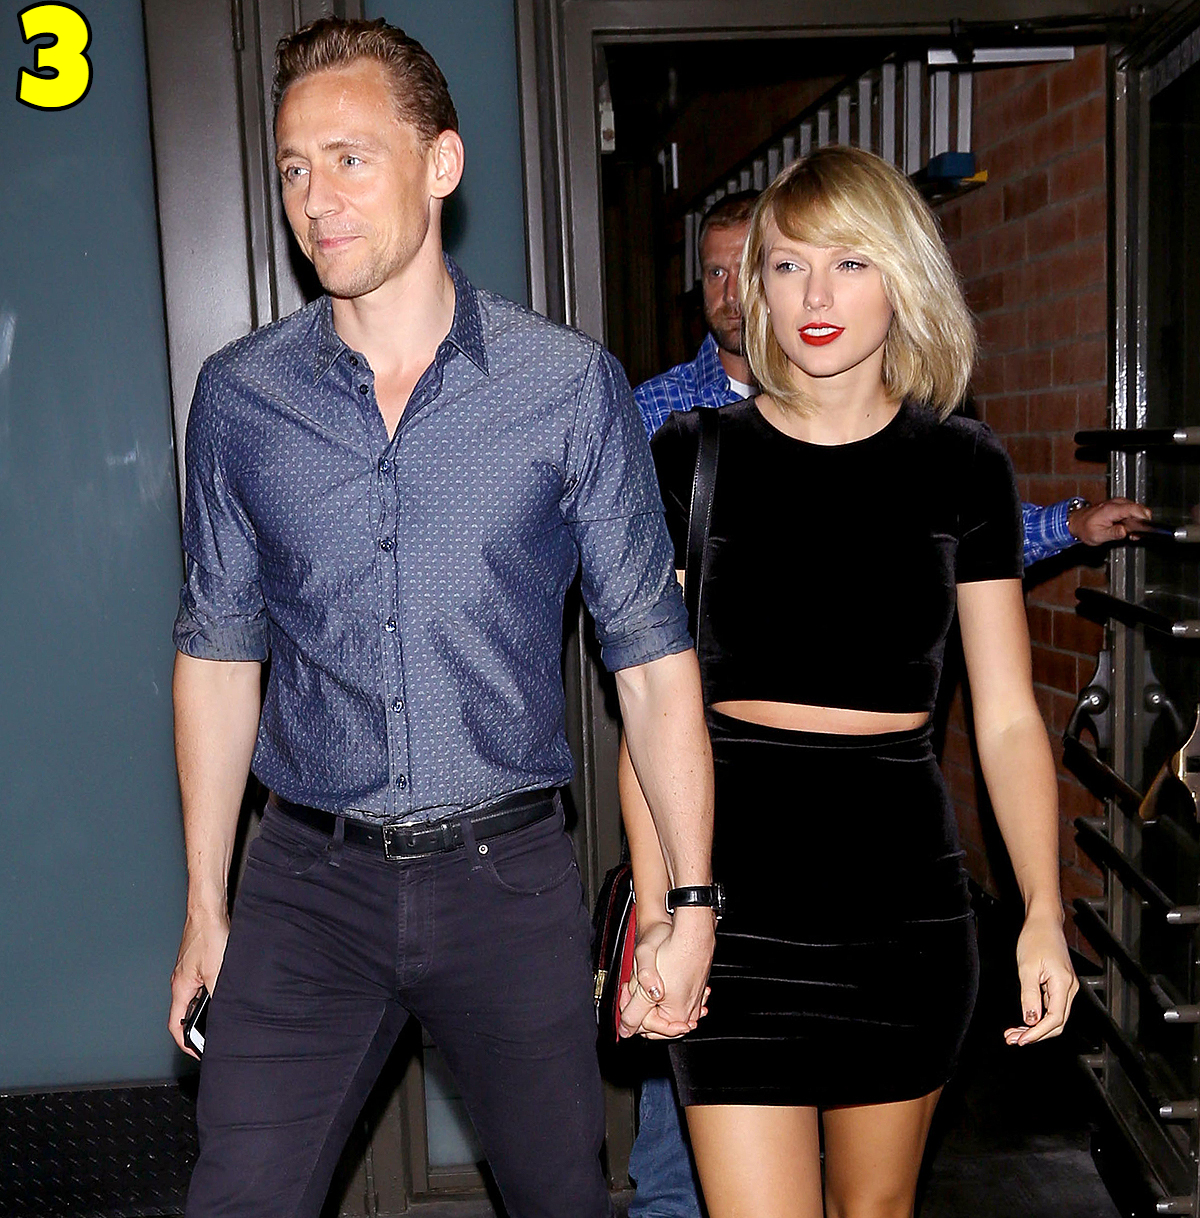 Tom Hiddleston And Taylor Swift Dating